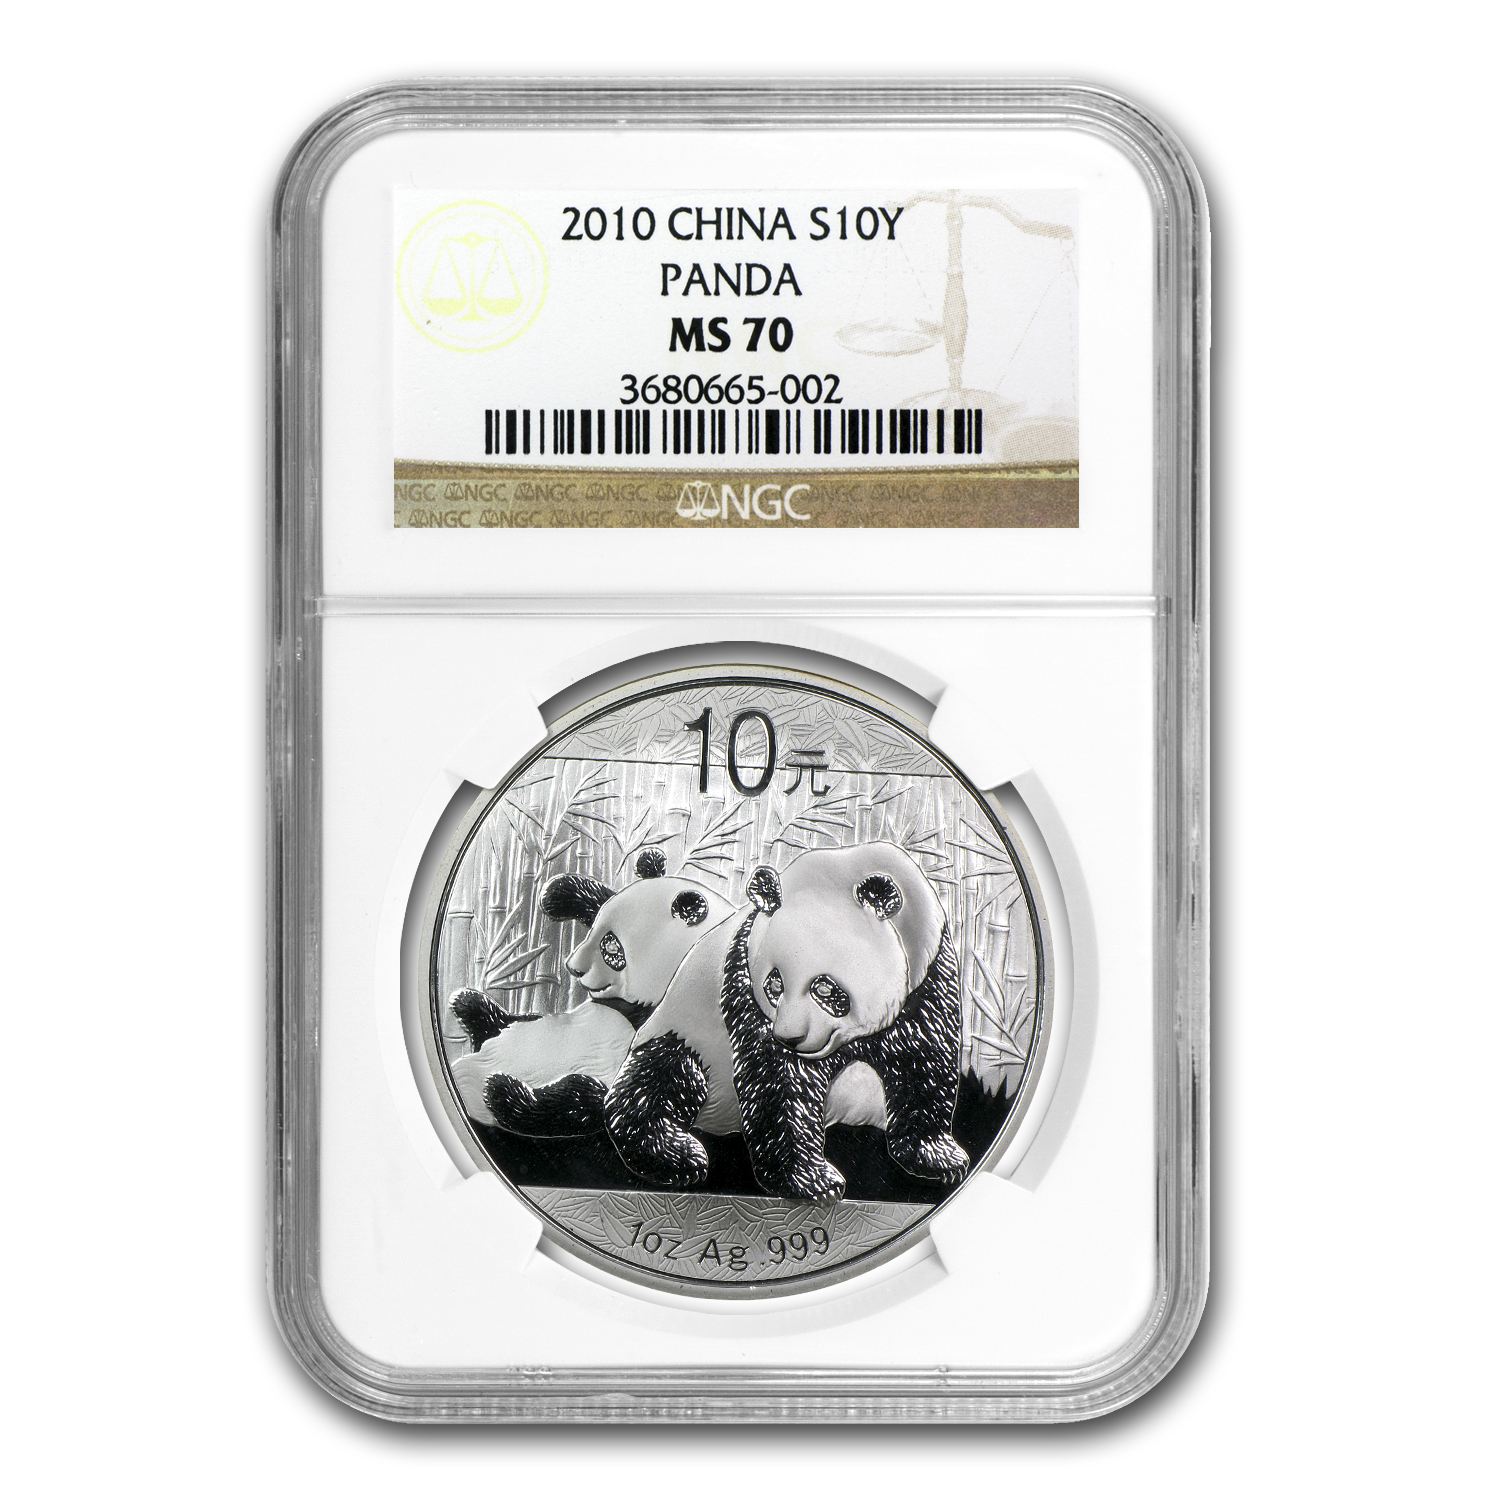 2010 China 1 oz Silver Panda MS-70 NGC